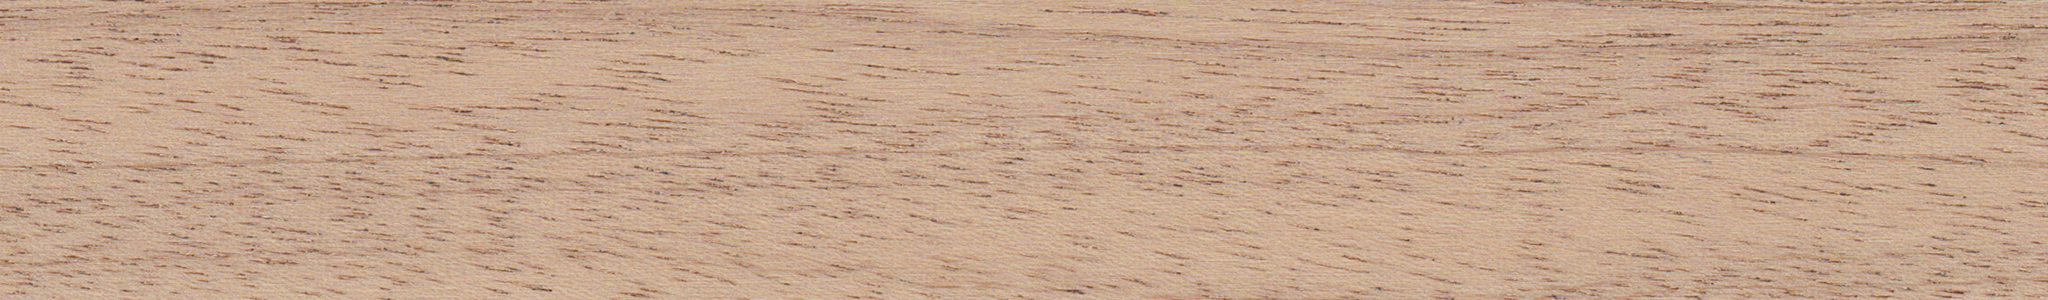 HD 78110 Veneer Edge Mahogany Fleece